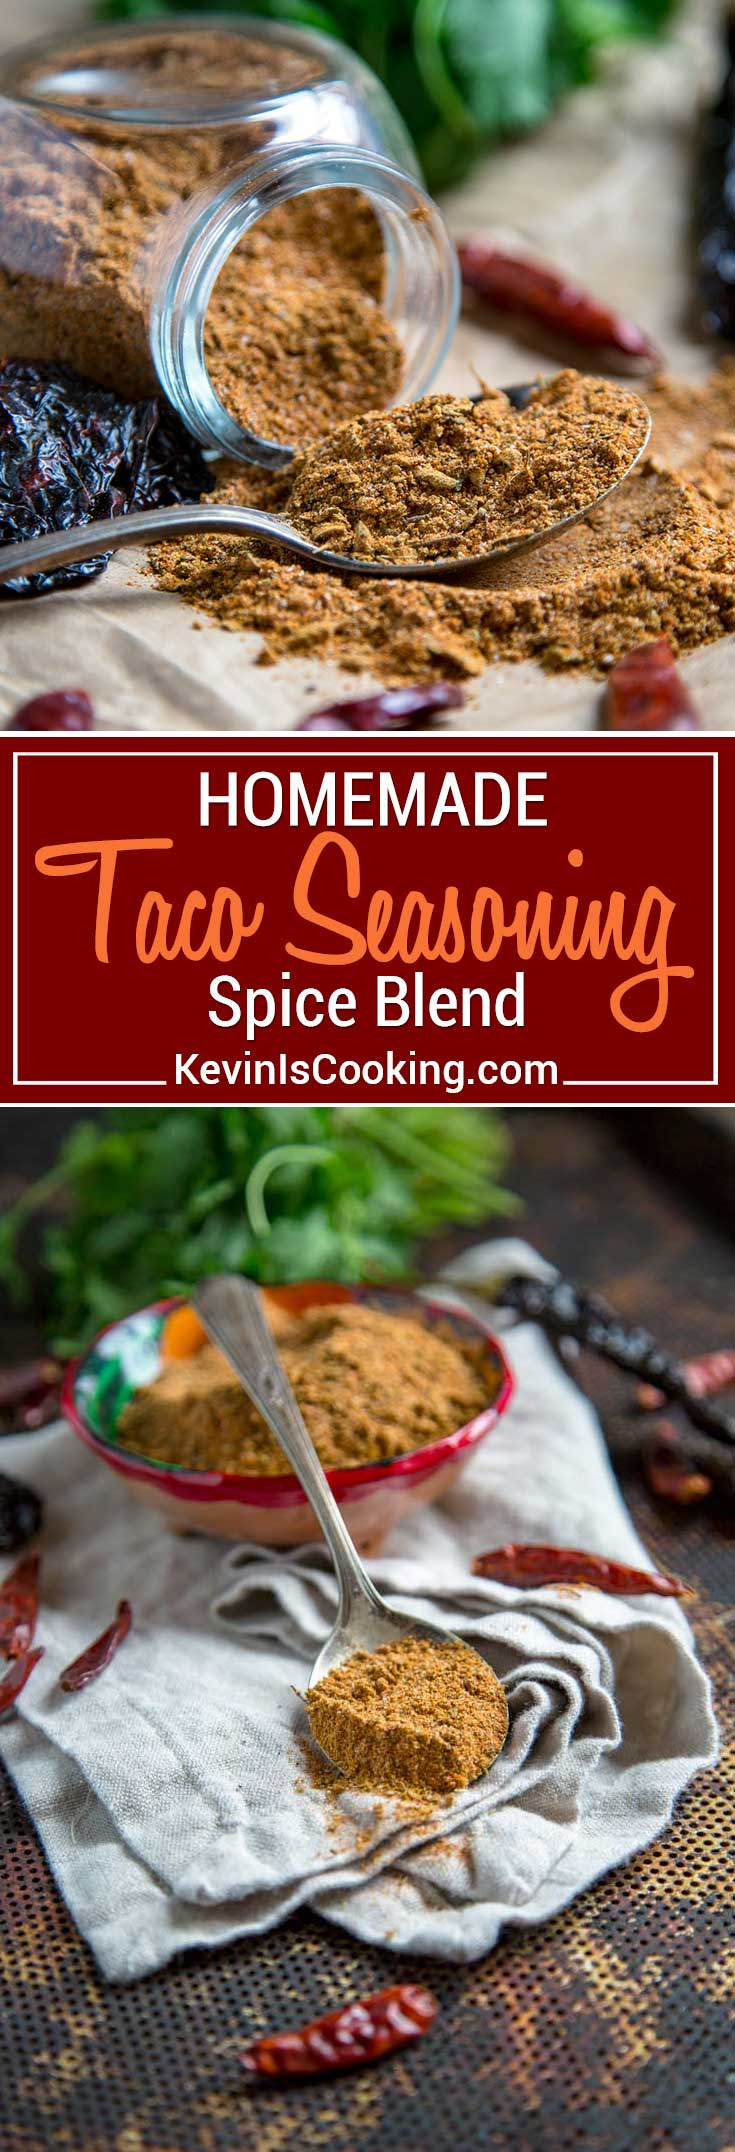 For my Homemade Taco Seasoning I keep things uncomplicated, but packed with a true flavor punch. Pantry staple herbs and spices are used like cumin, oregano, chili powder, but I find Mexican oregano is best, ancho chili powder because it's just that, not a mix of chilies and little salt. #taco #spiceblend #tacoseasoning